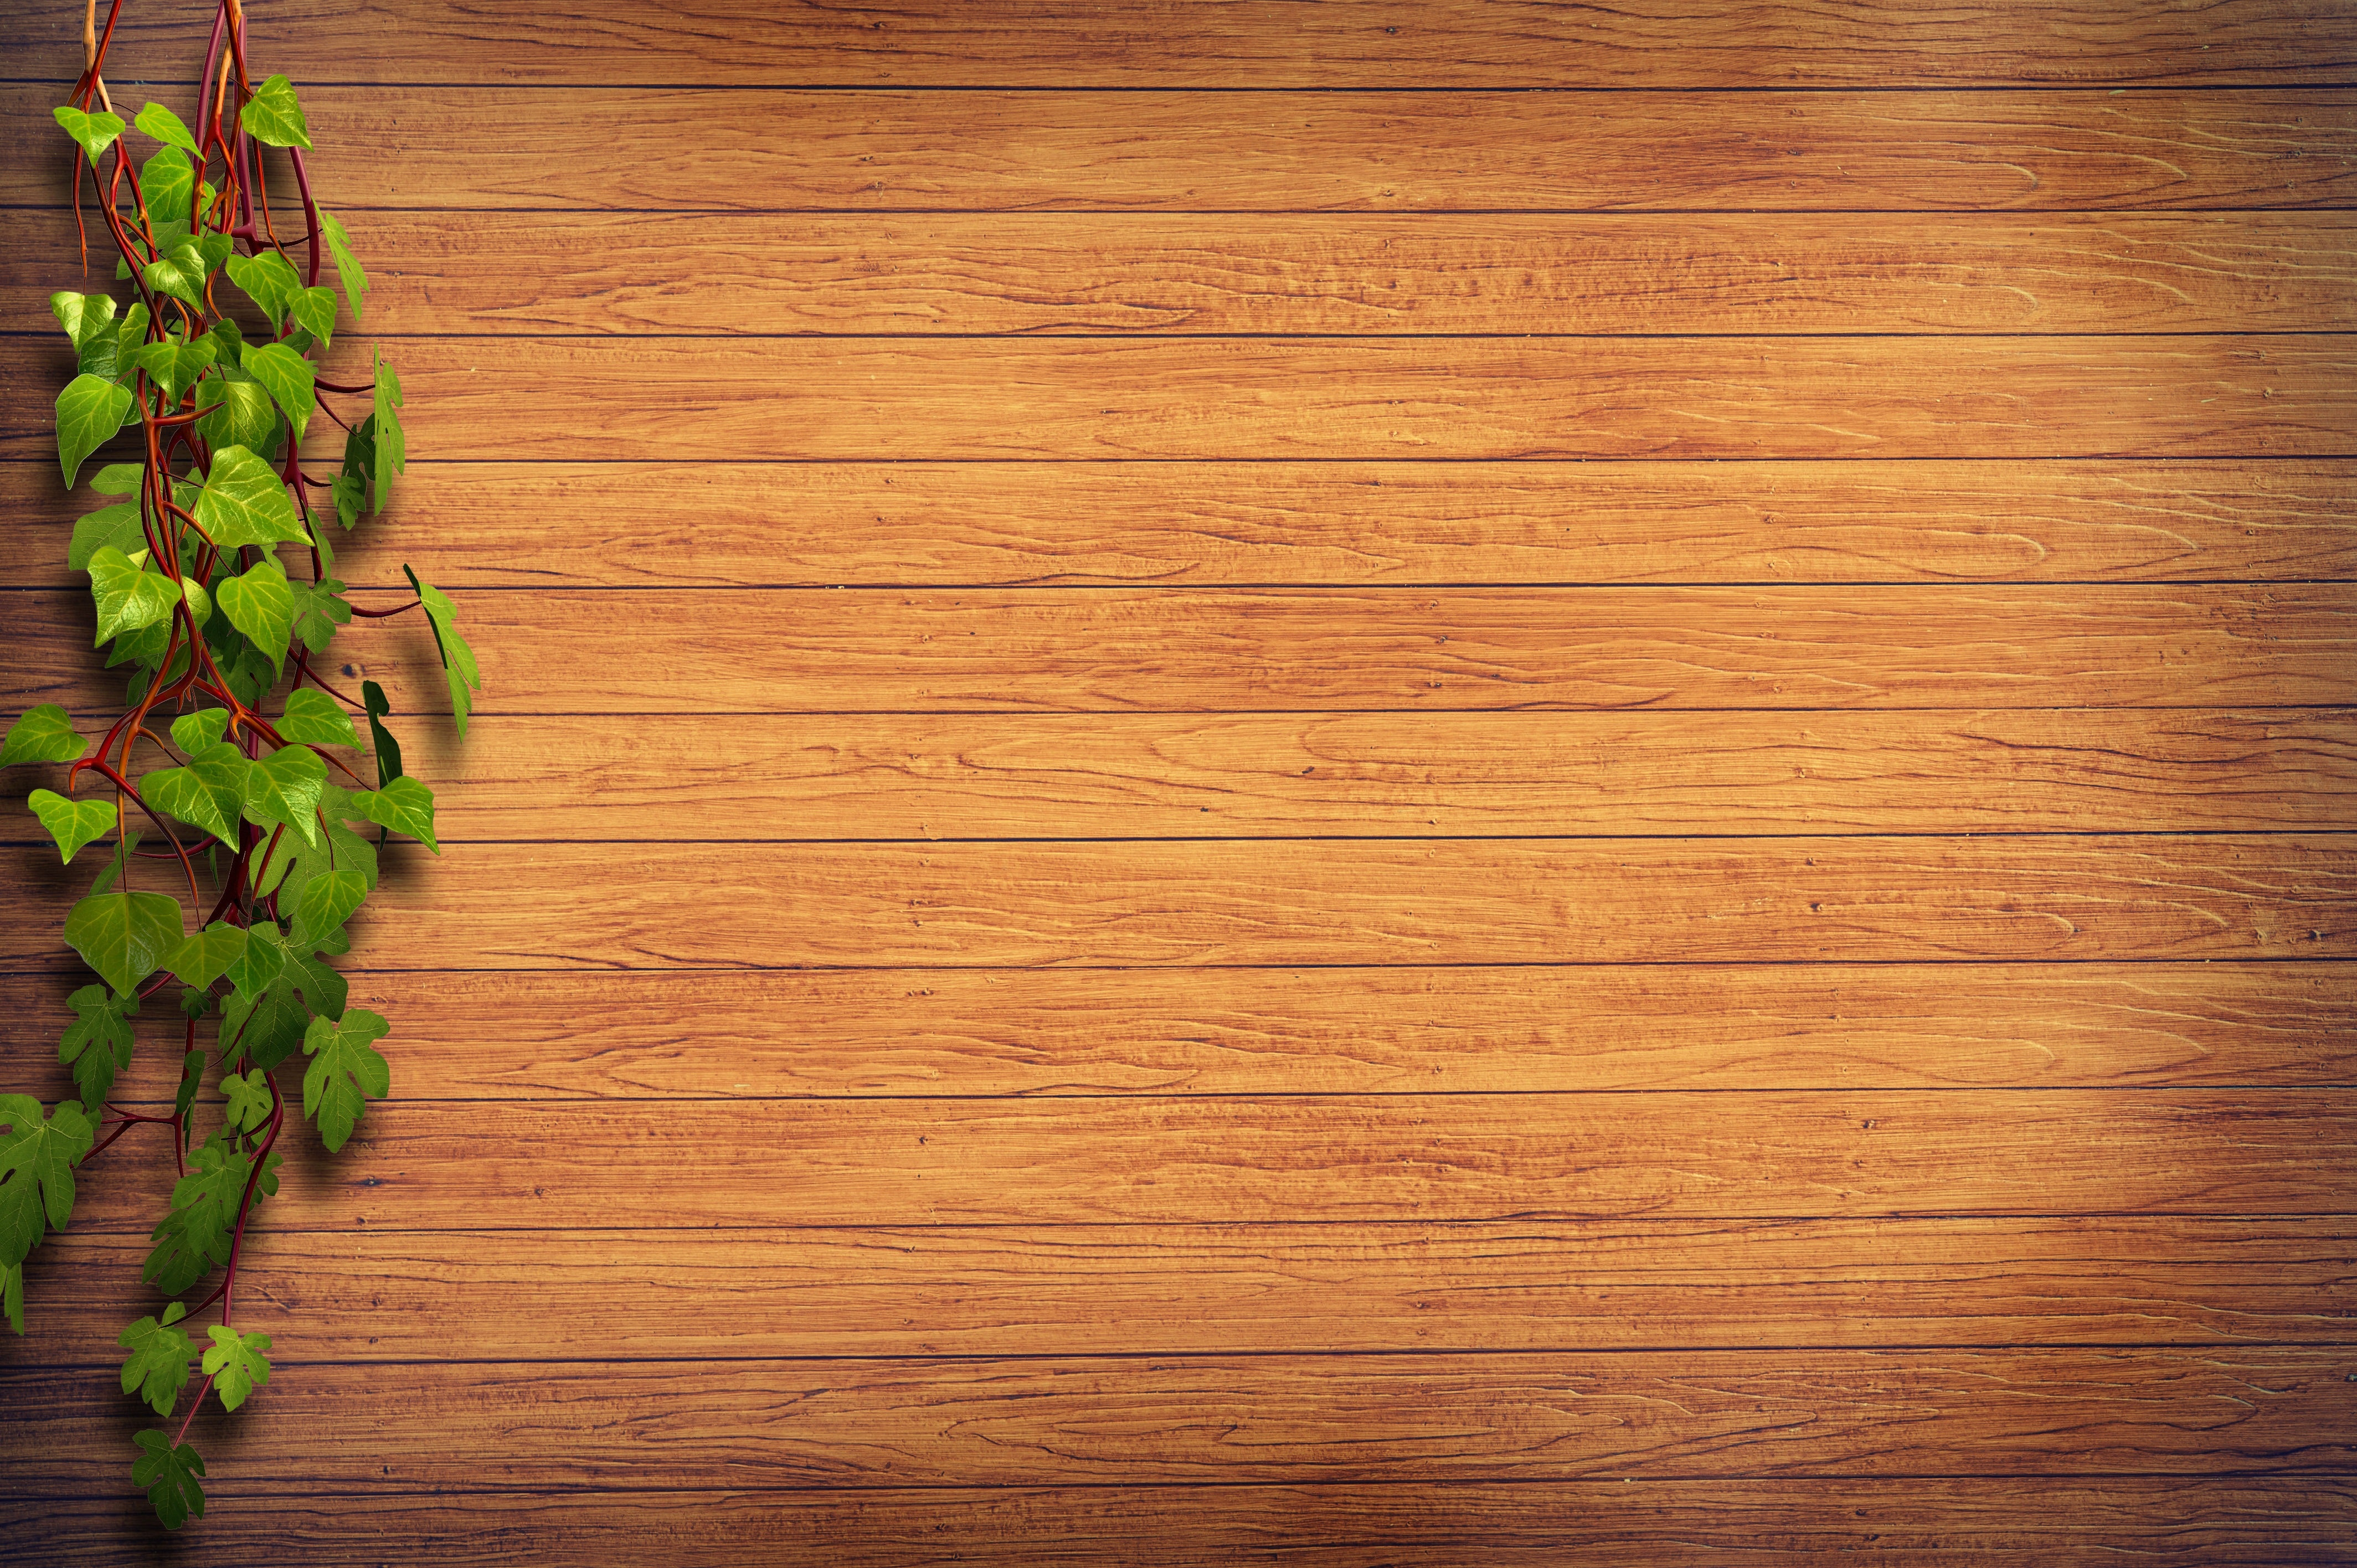 Brown Wooden Surface Beside Green Plant